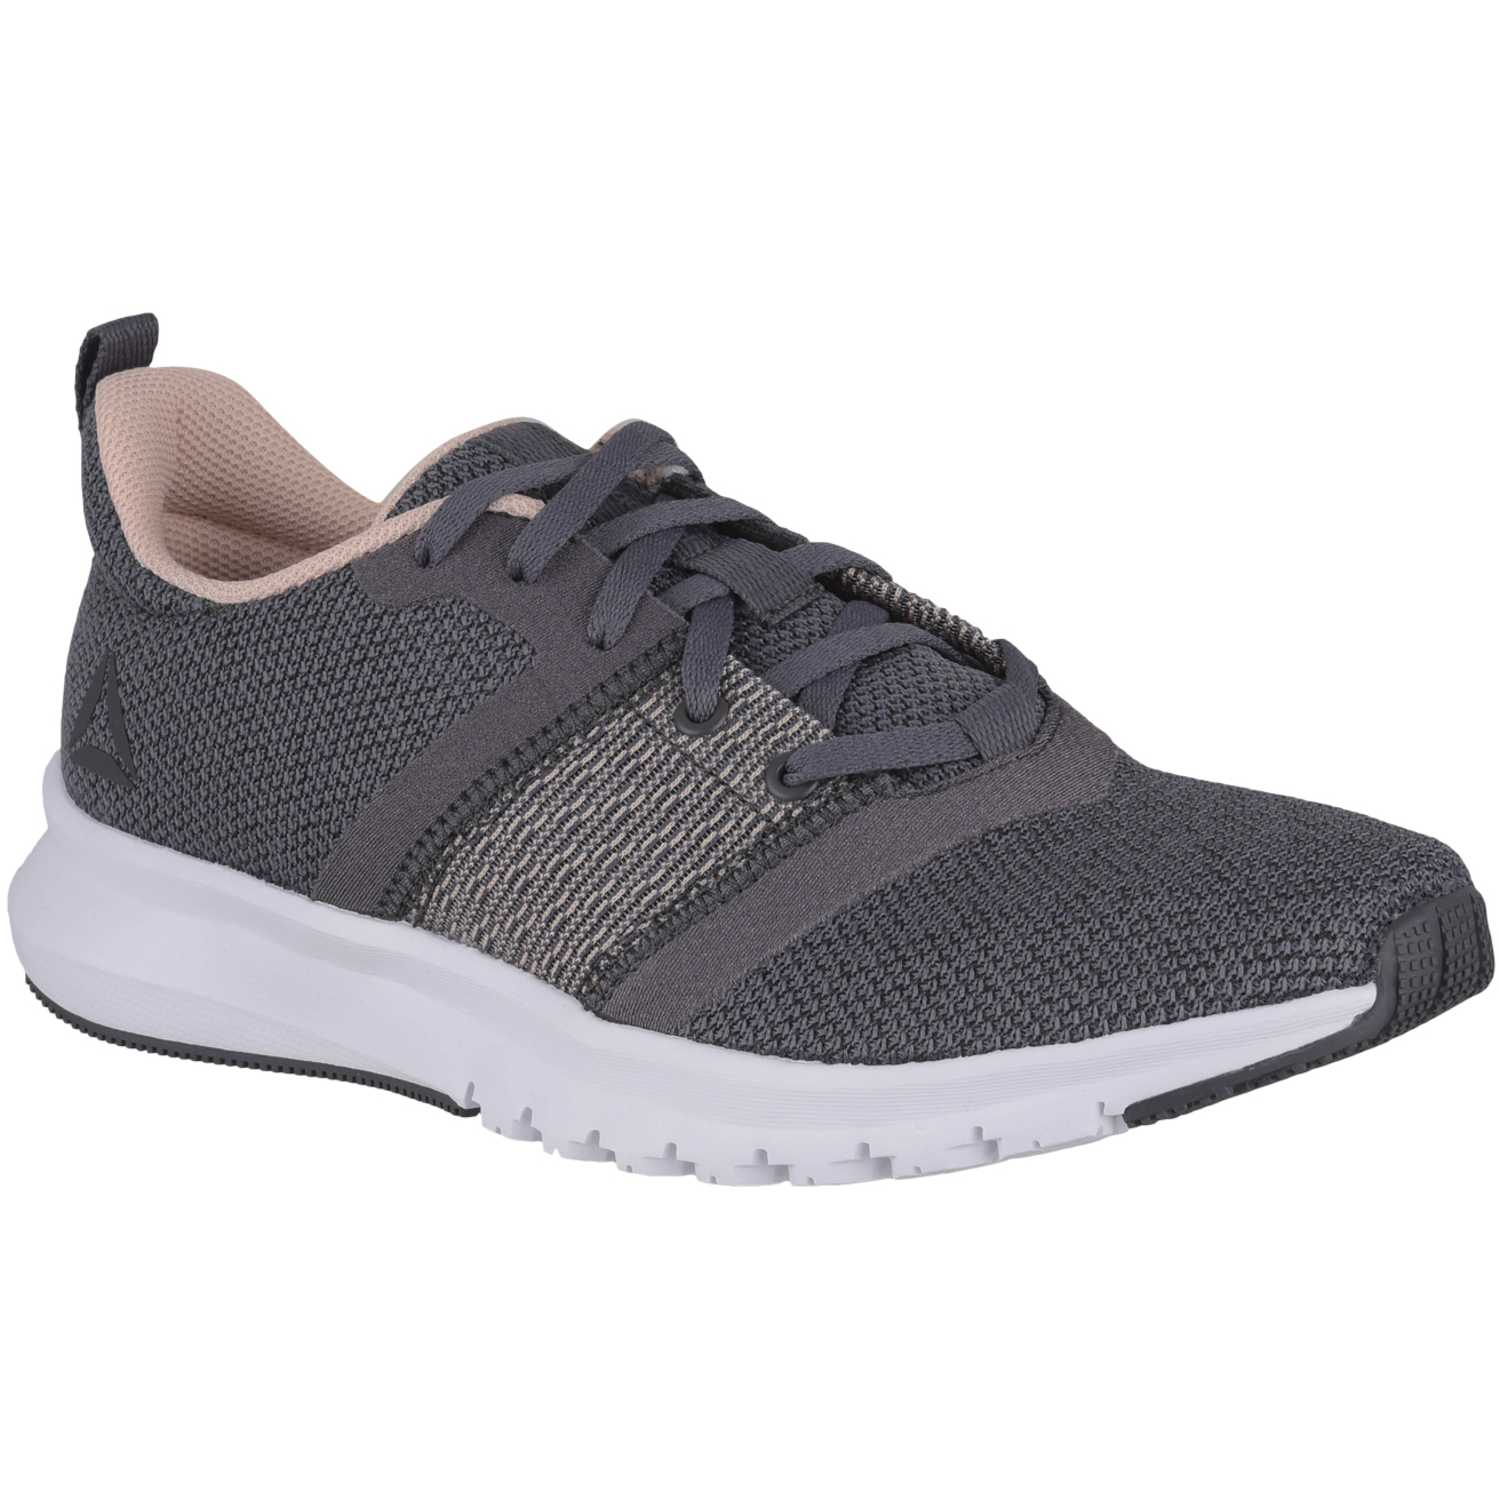 Mujer Print Rush Gr Lite Casual Gris De Reebok doexCBr